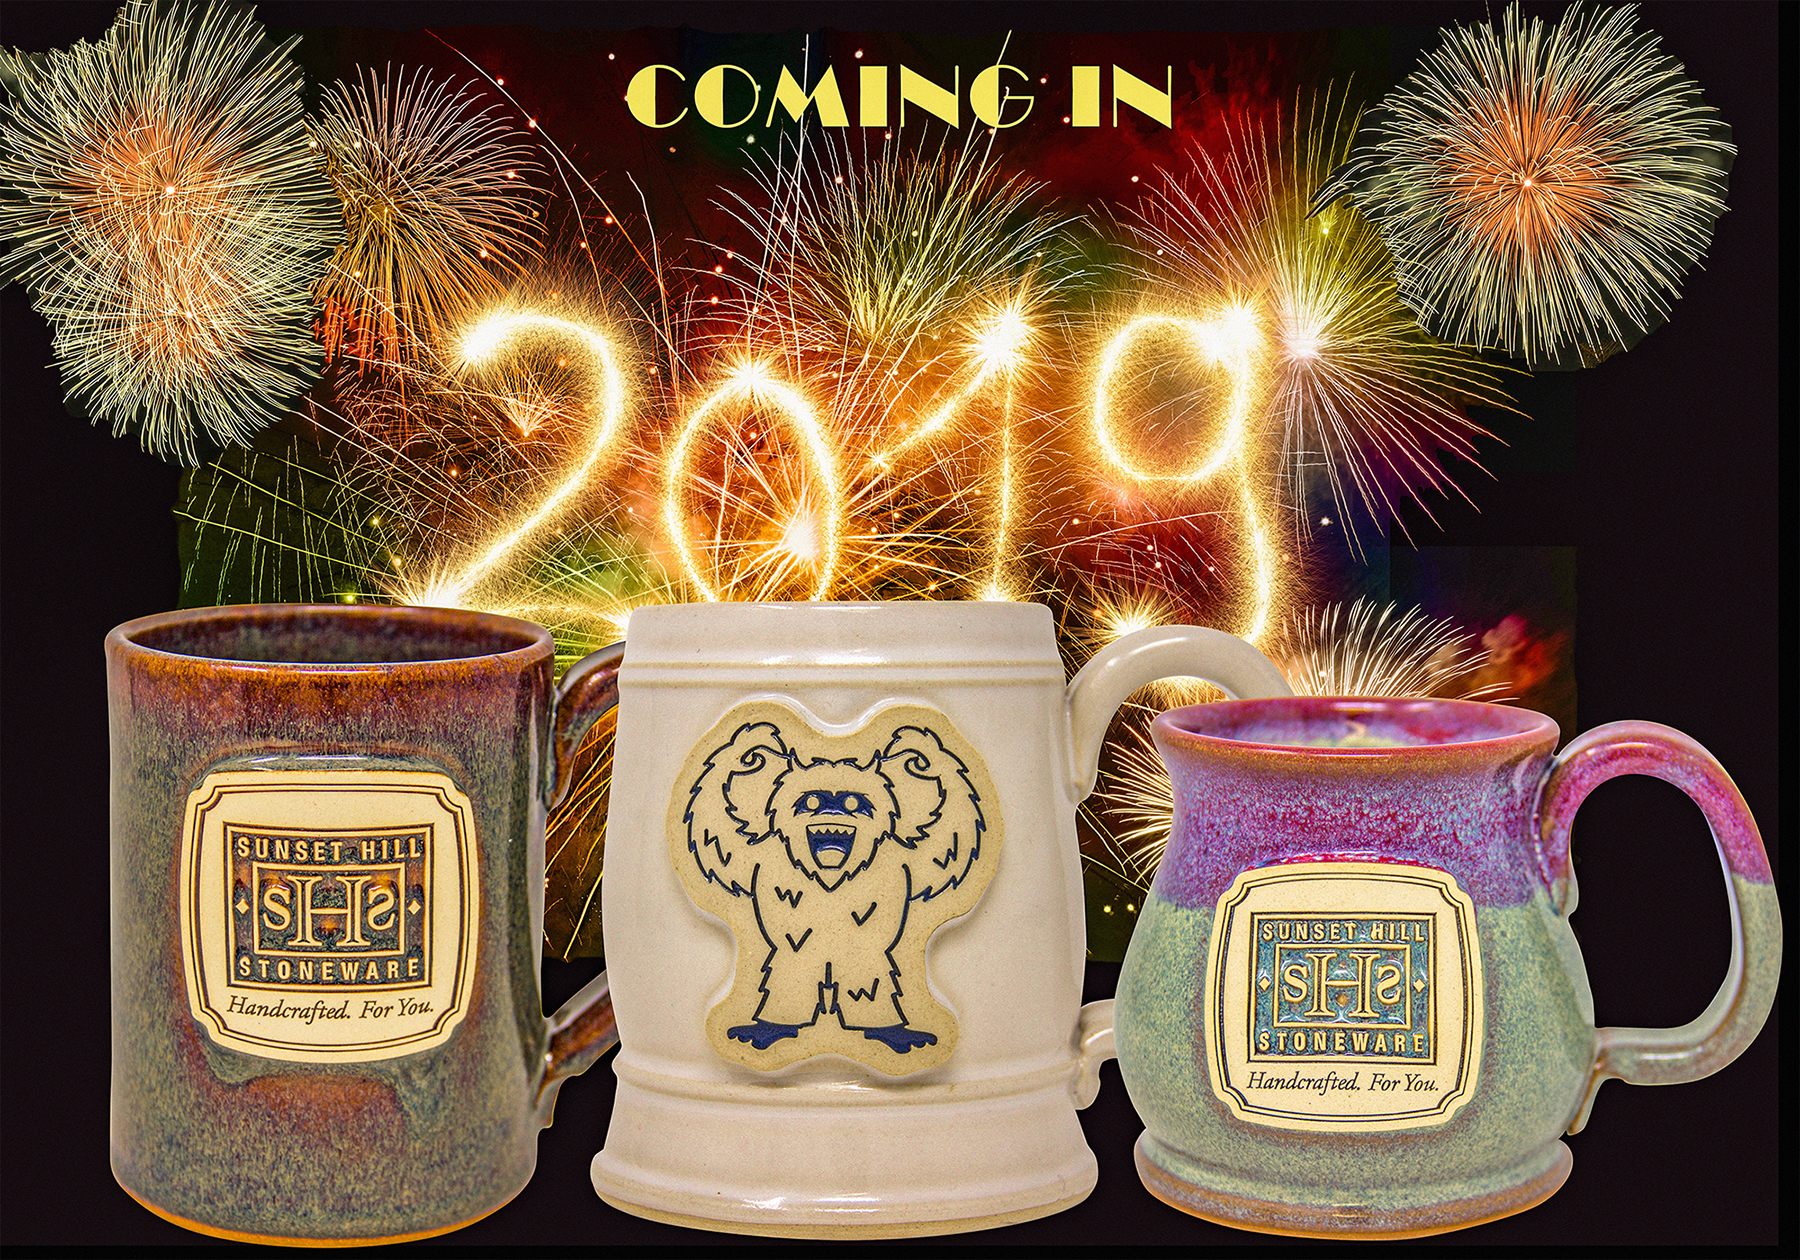 New unique mugs and glazes for the new year